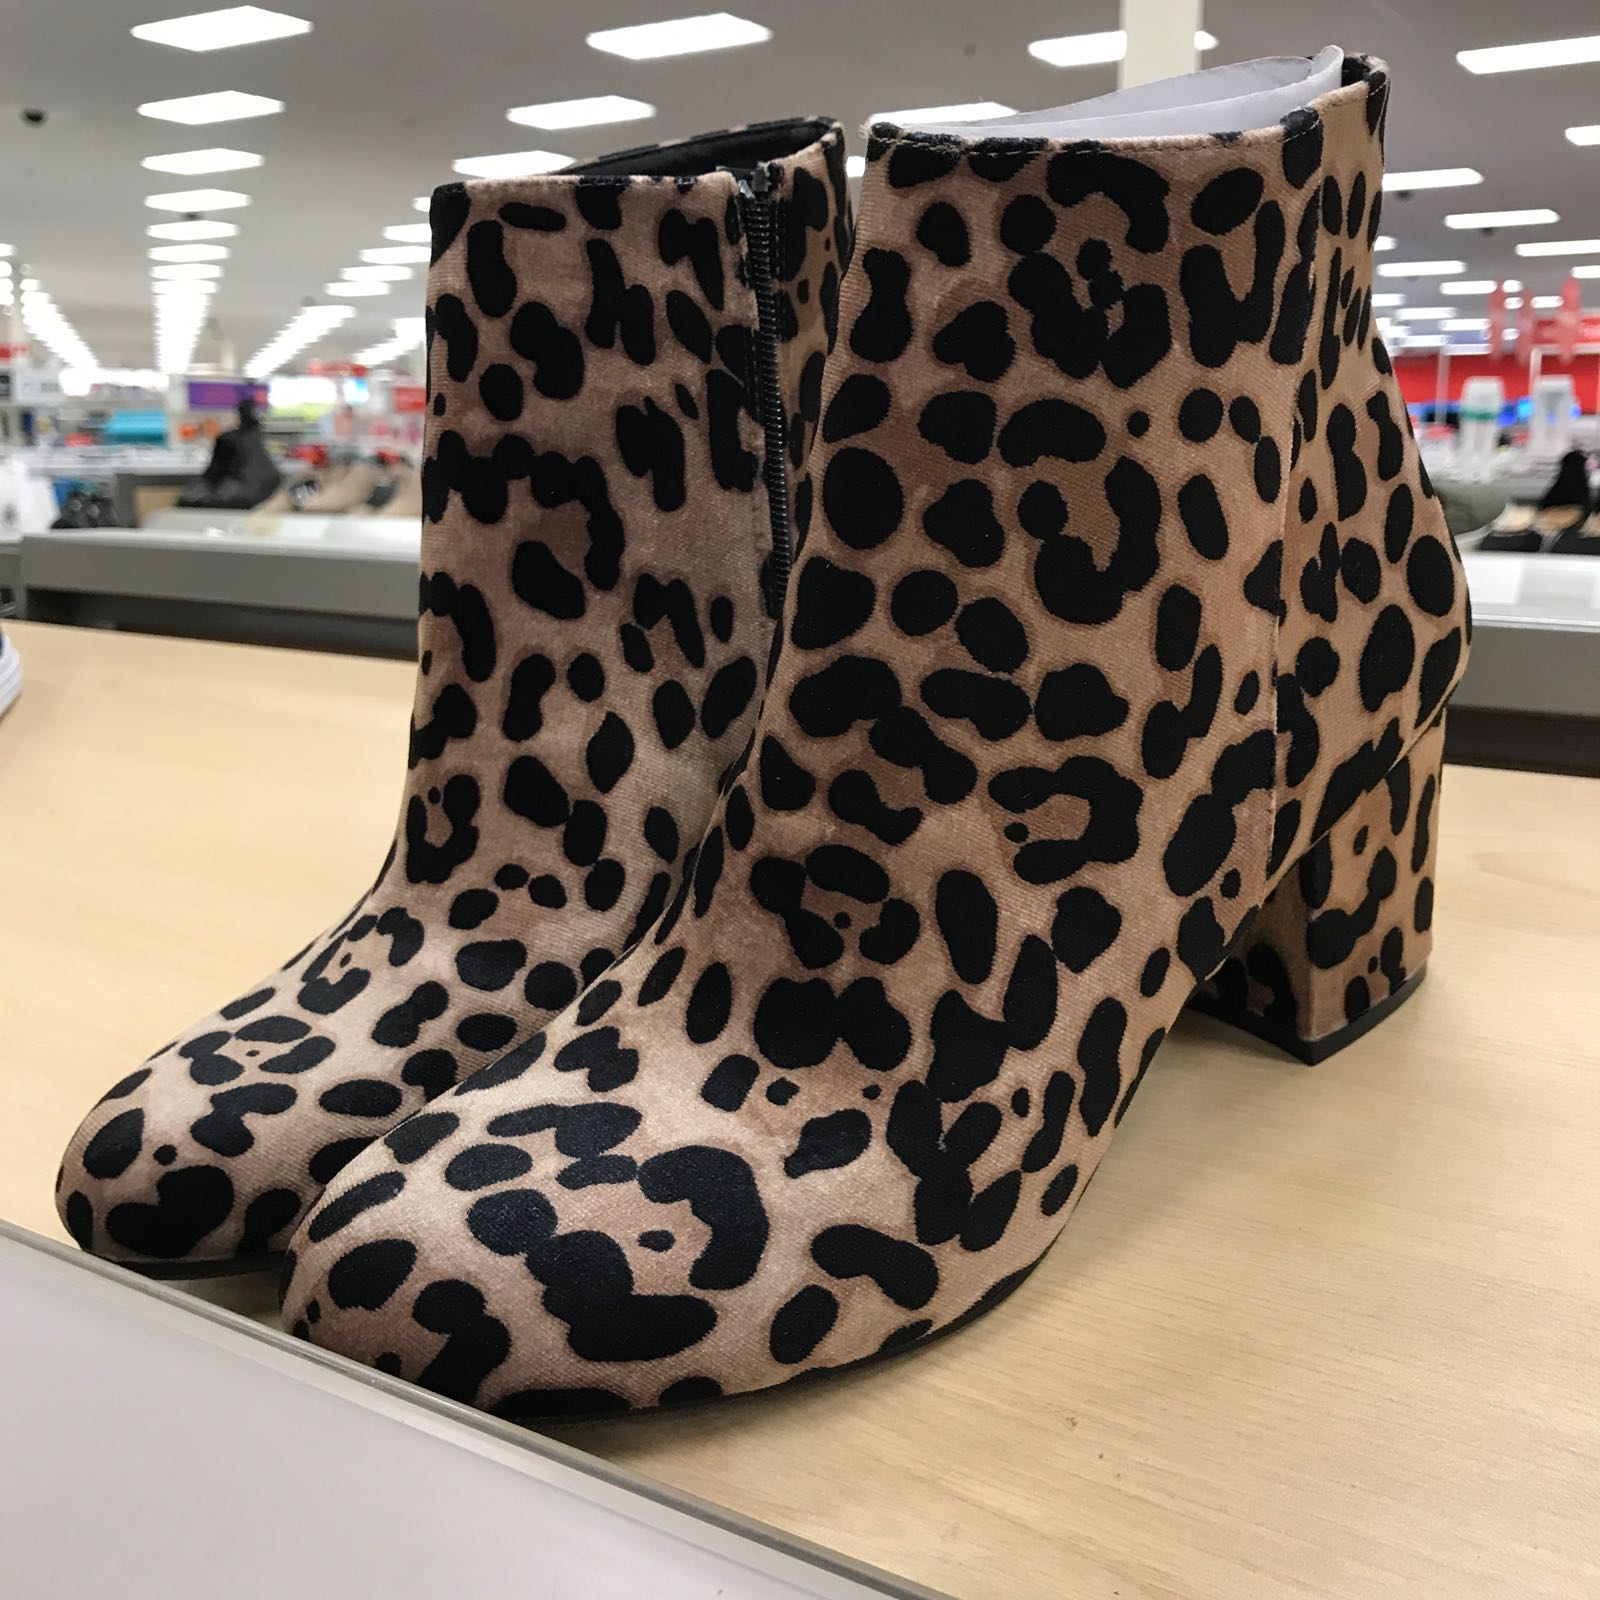 Leopard booties under $40 at Target.